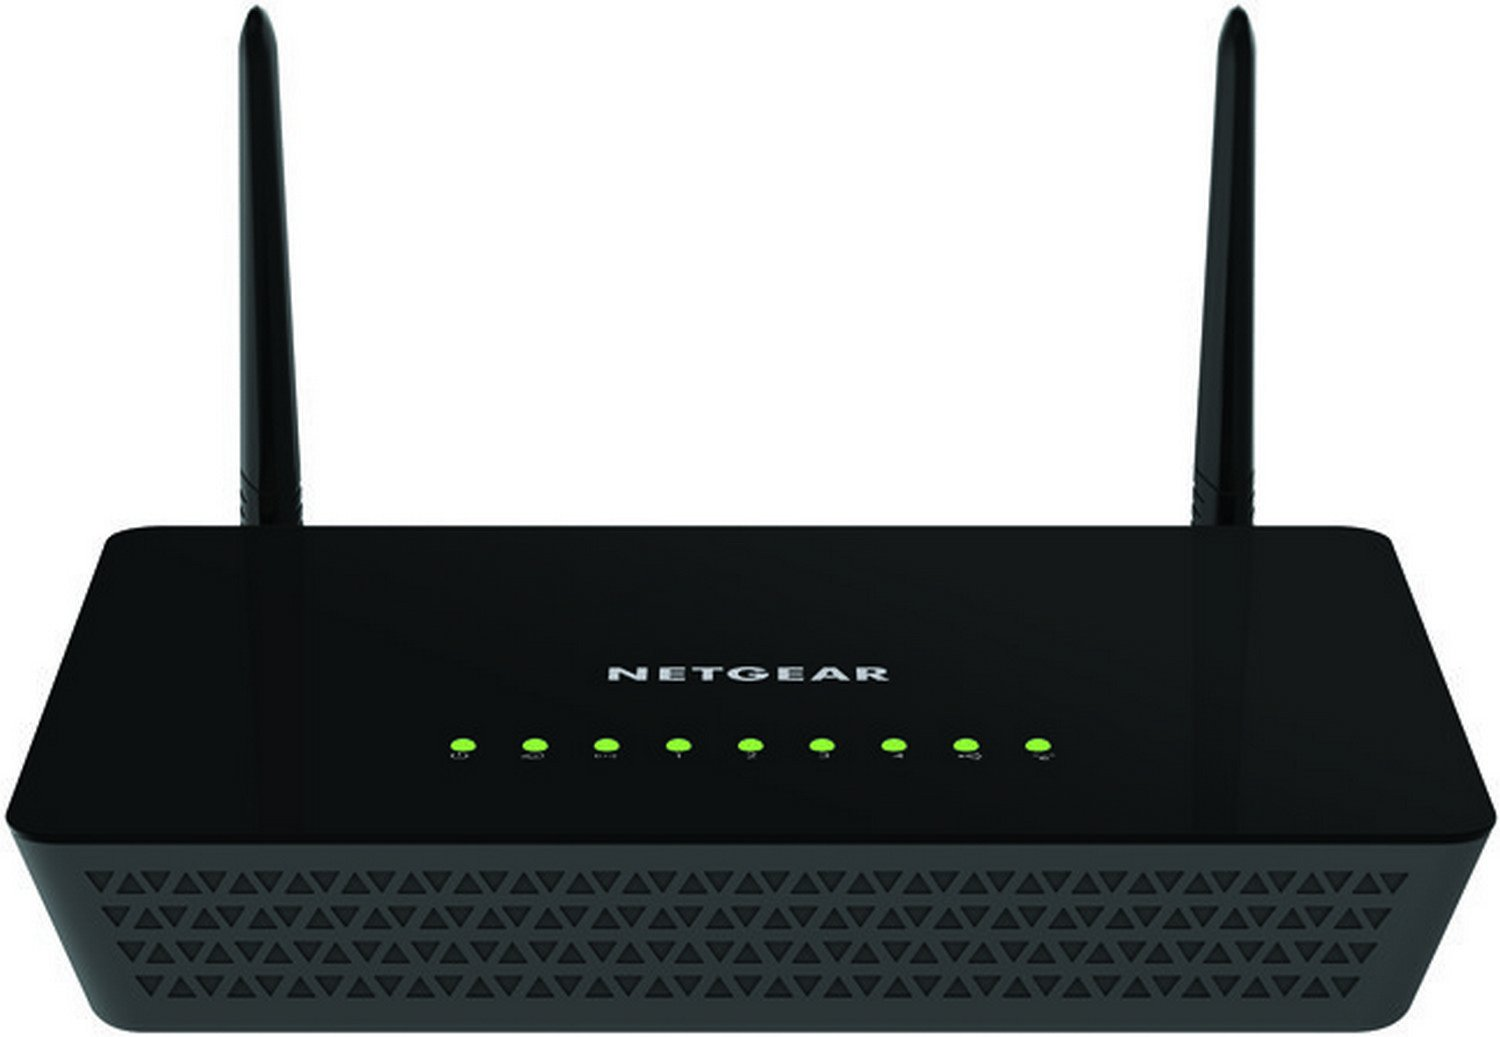 The NETGEAR AC1200